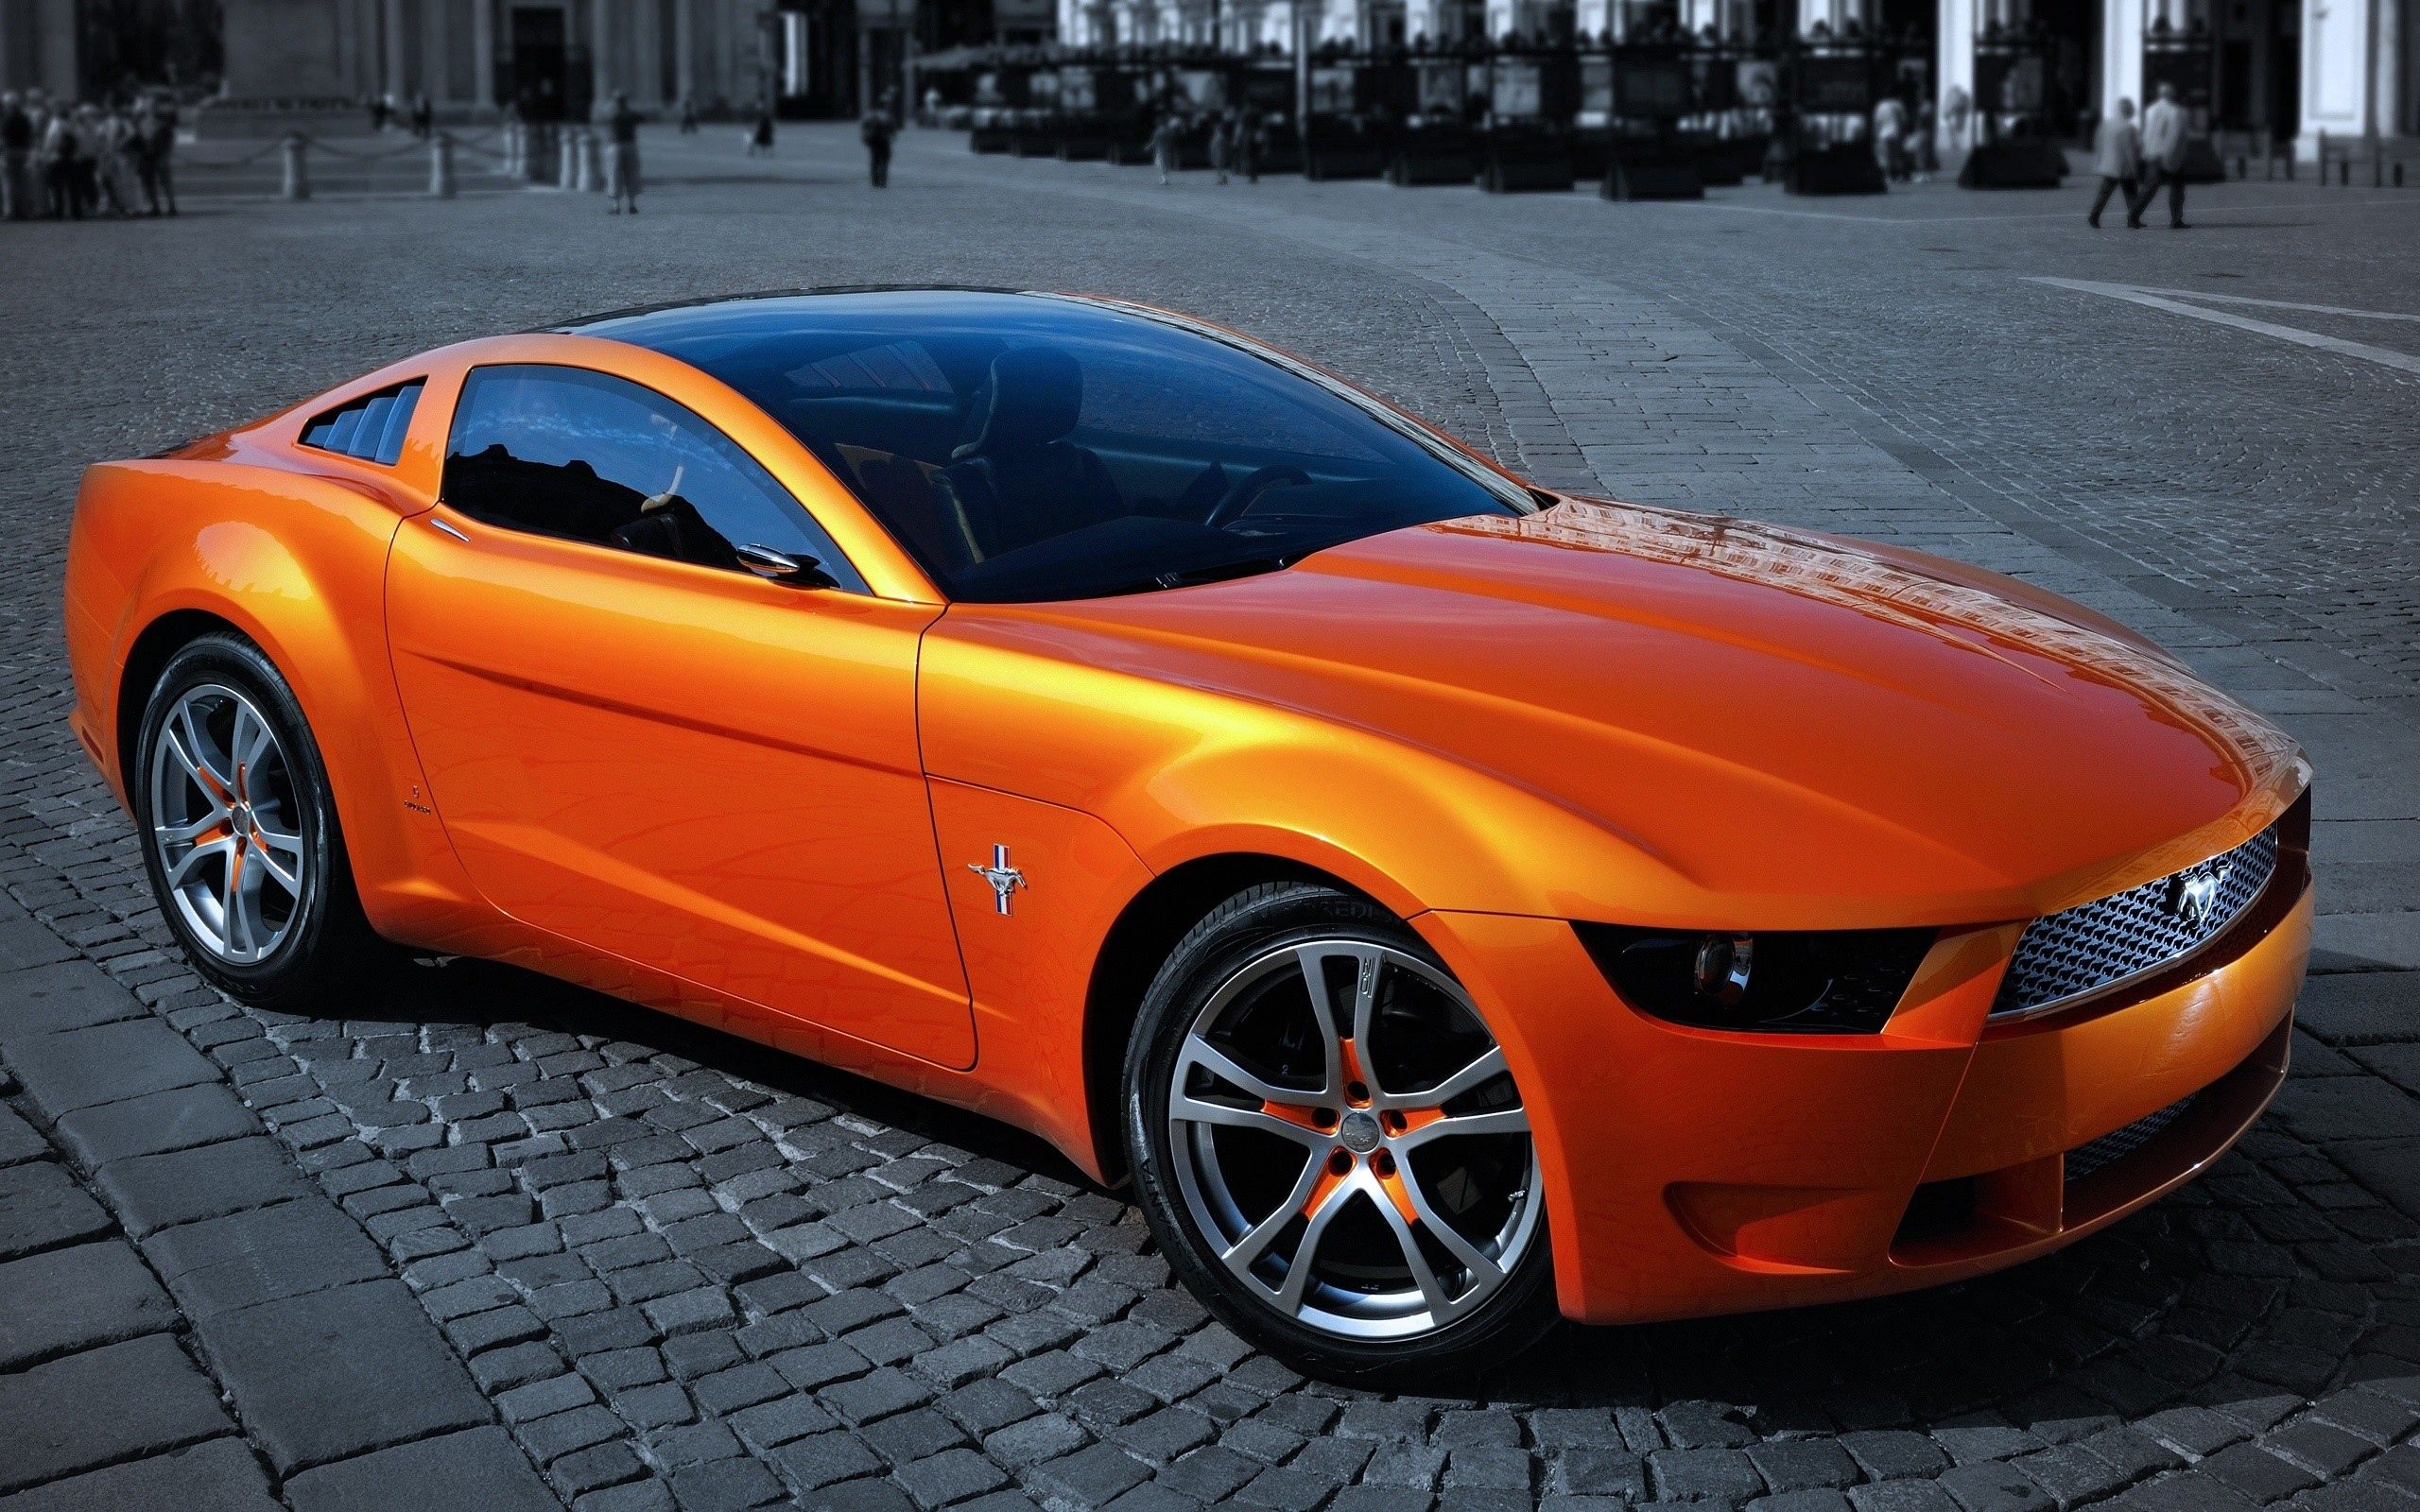 141774 download wallpaper Ford, Mustang, Cars, Traffic, Movement, Street screensavers and pictures for free